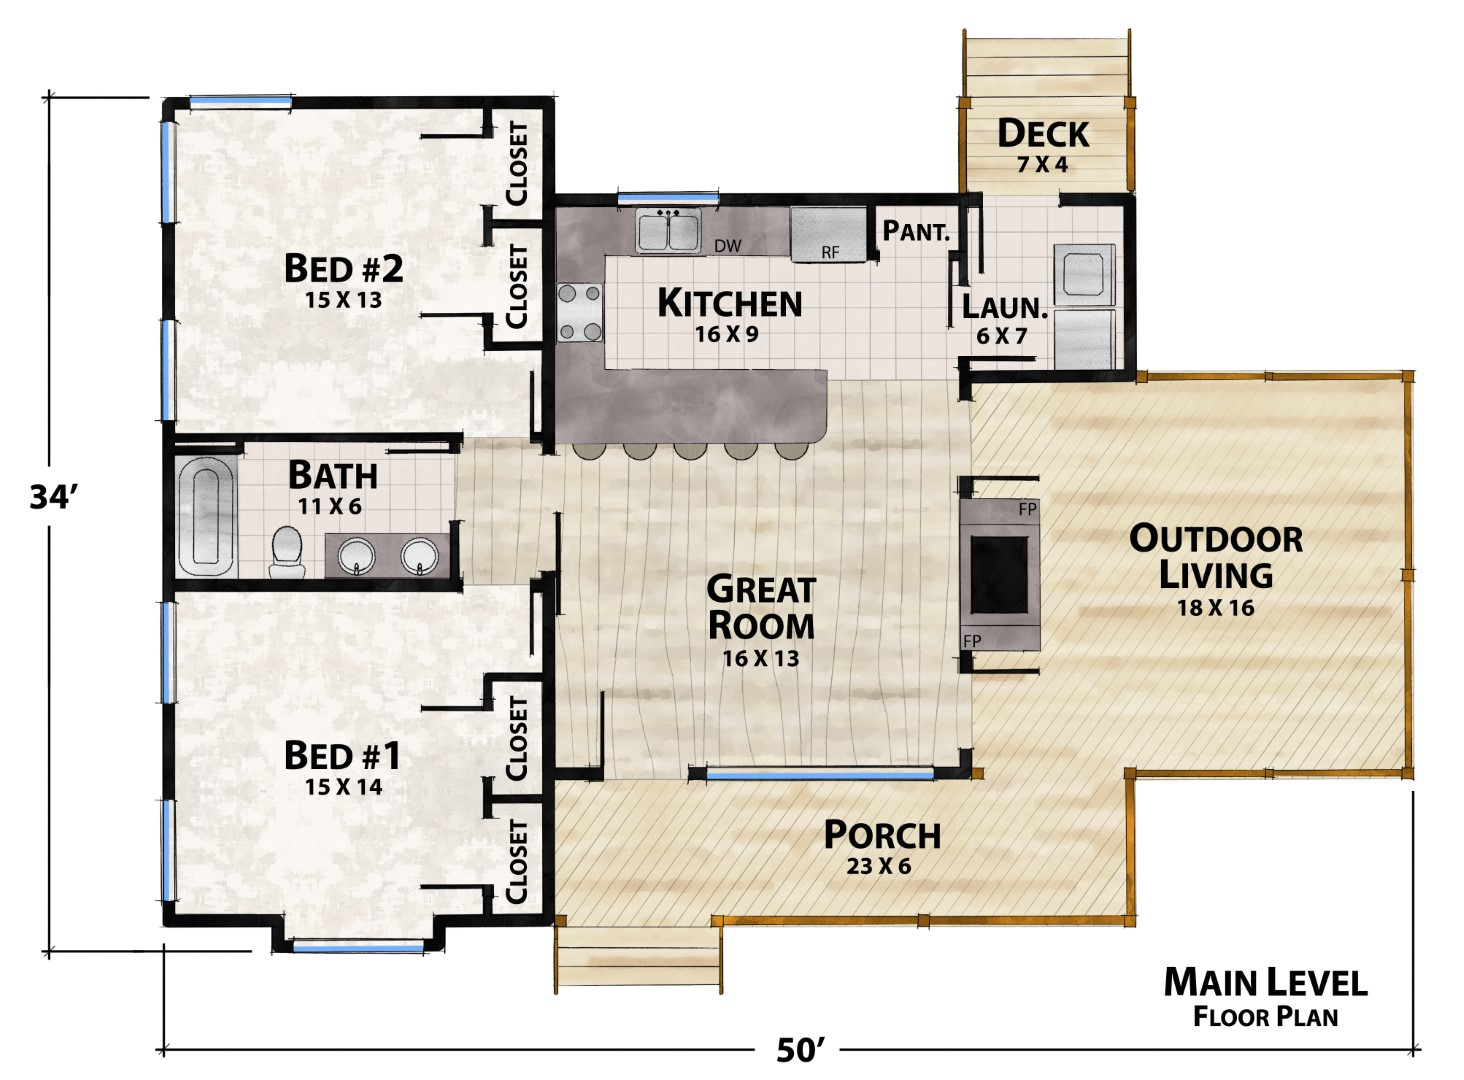 Cubby Hole Camp Main Floor Plan by Natural Element Homes